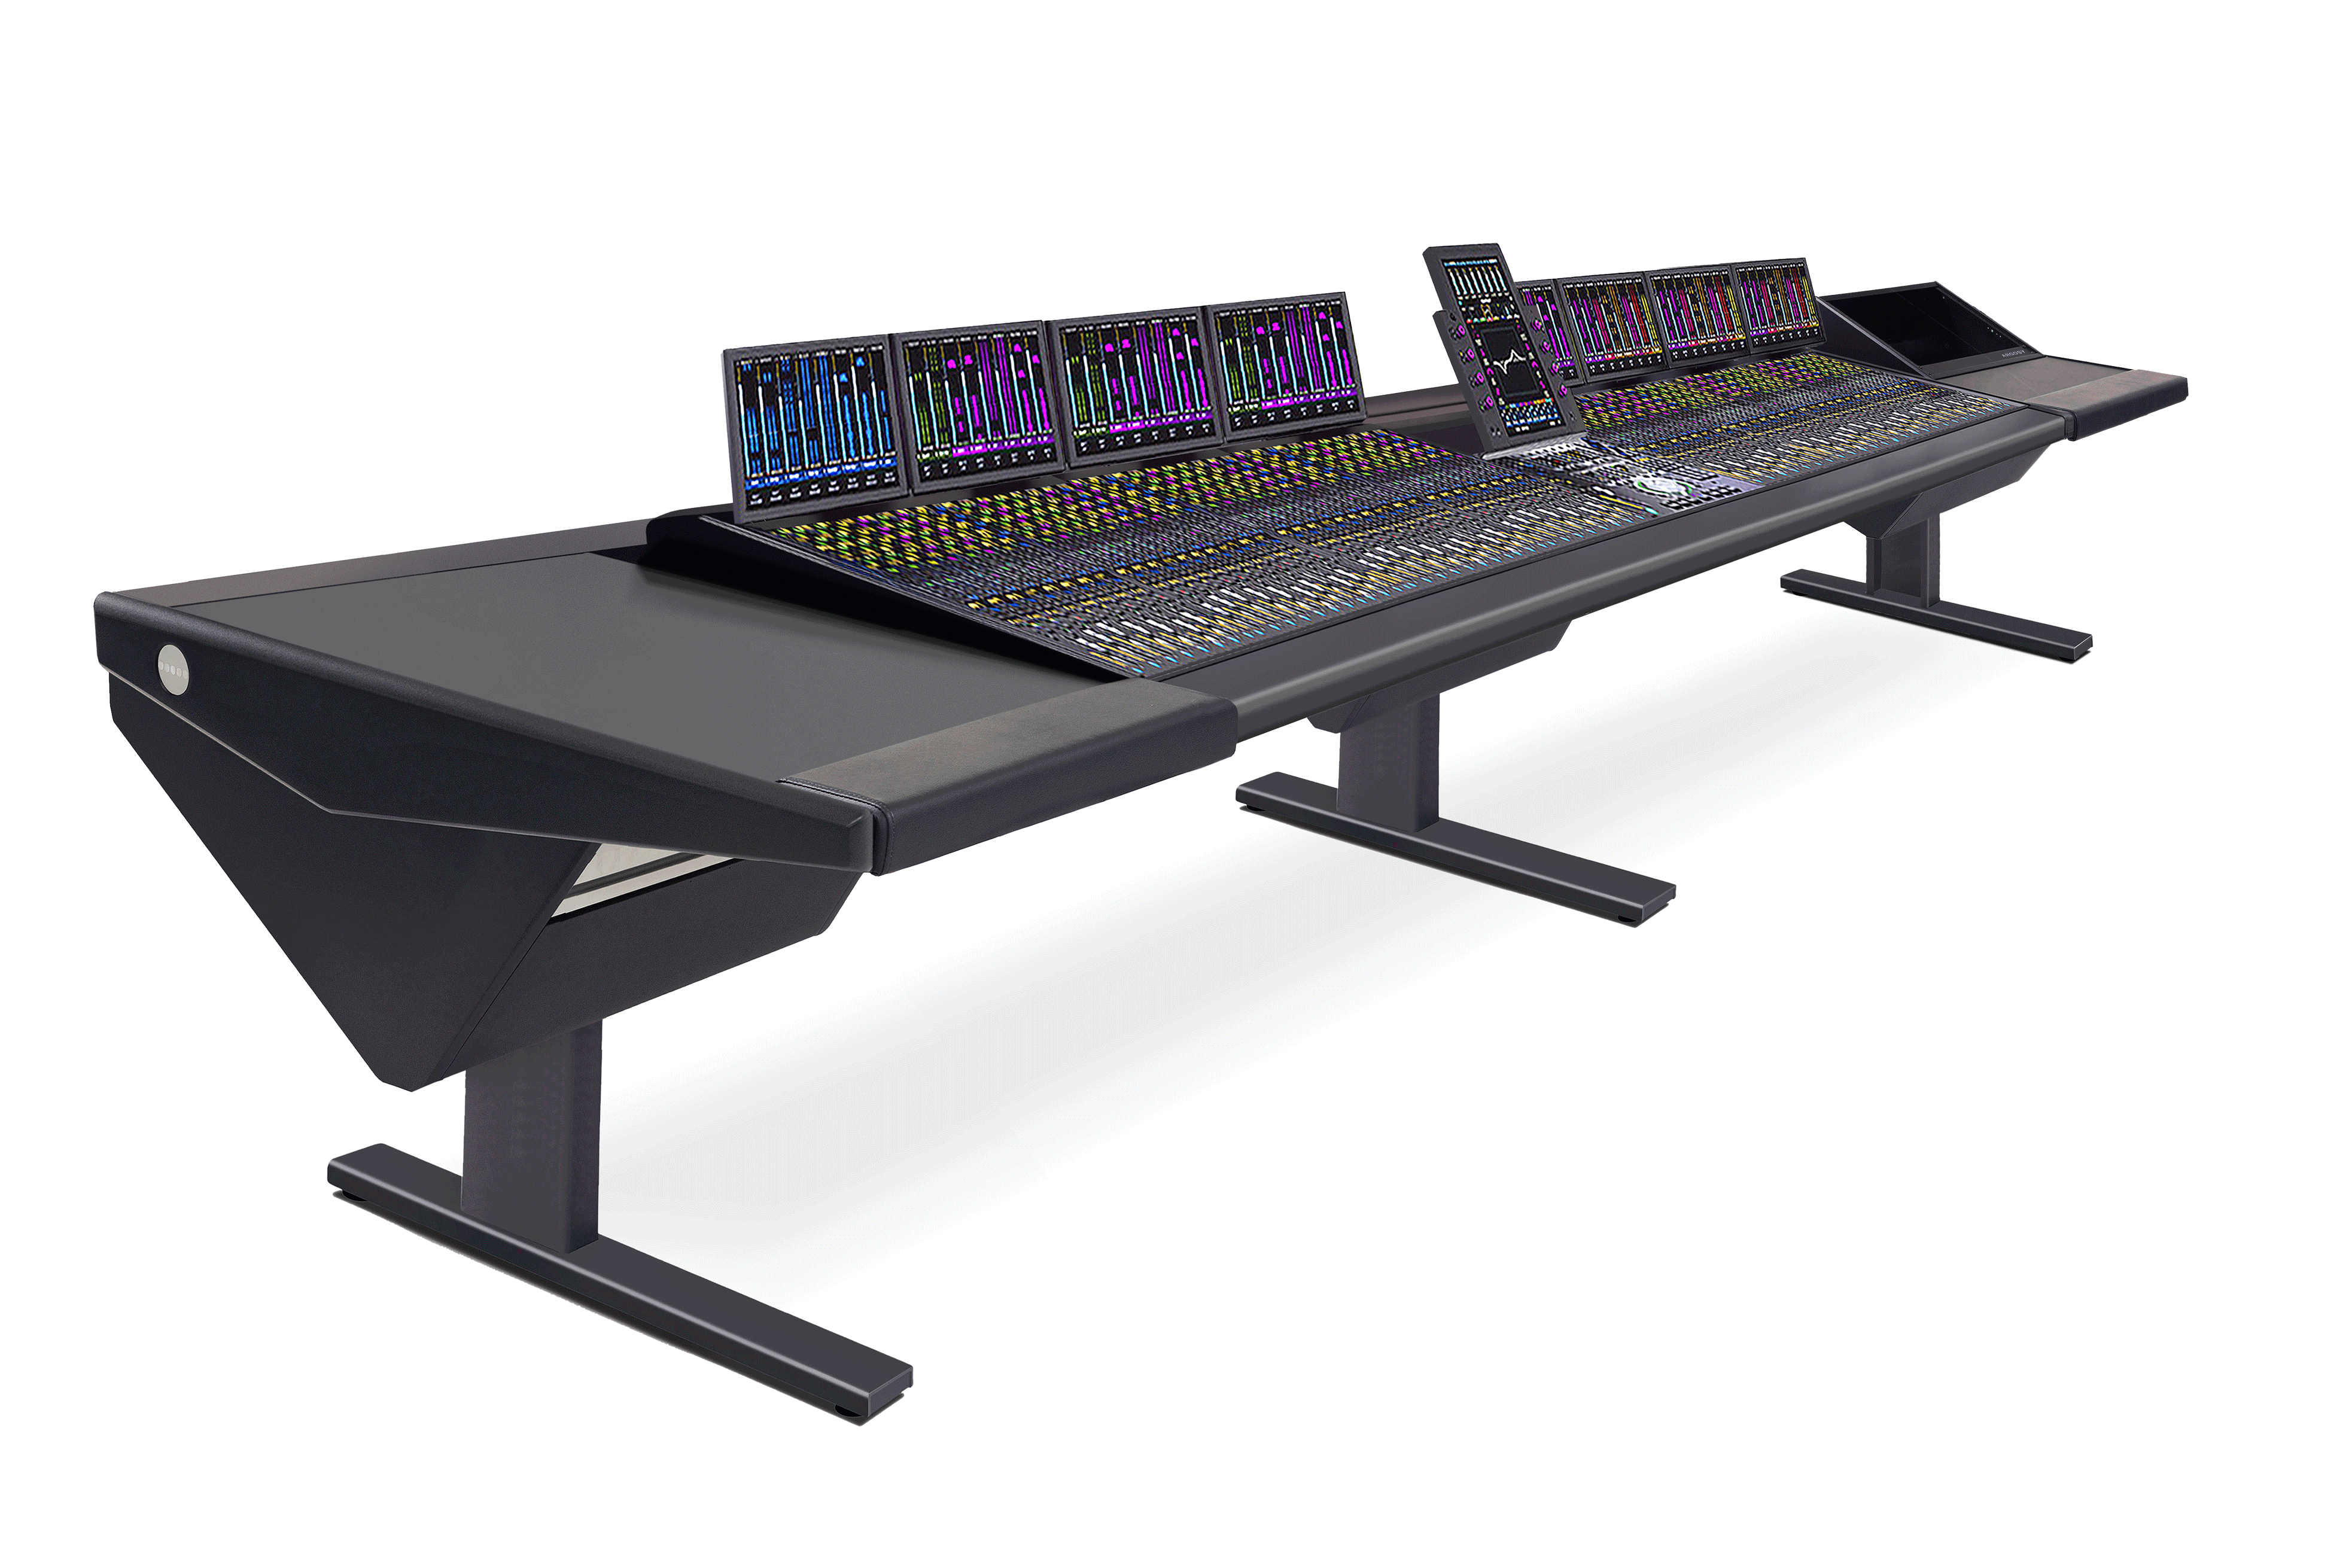 64 Fader System with Desk (L) and Rack (R)